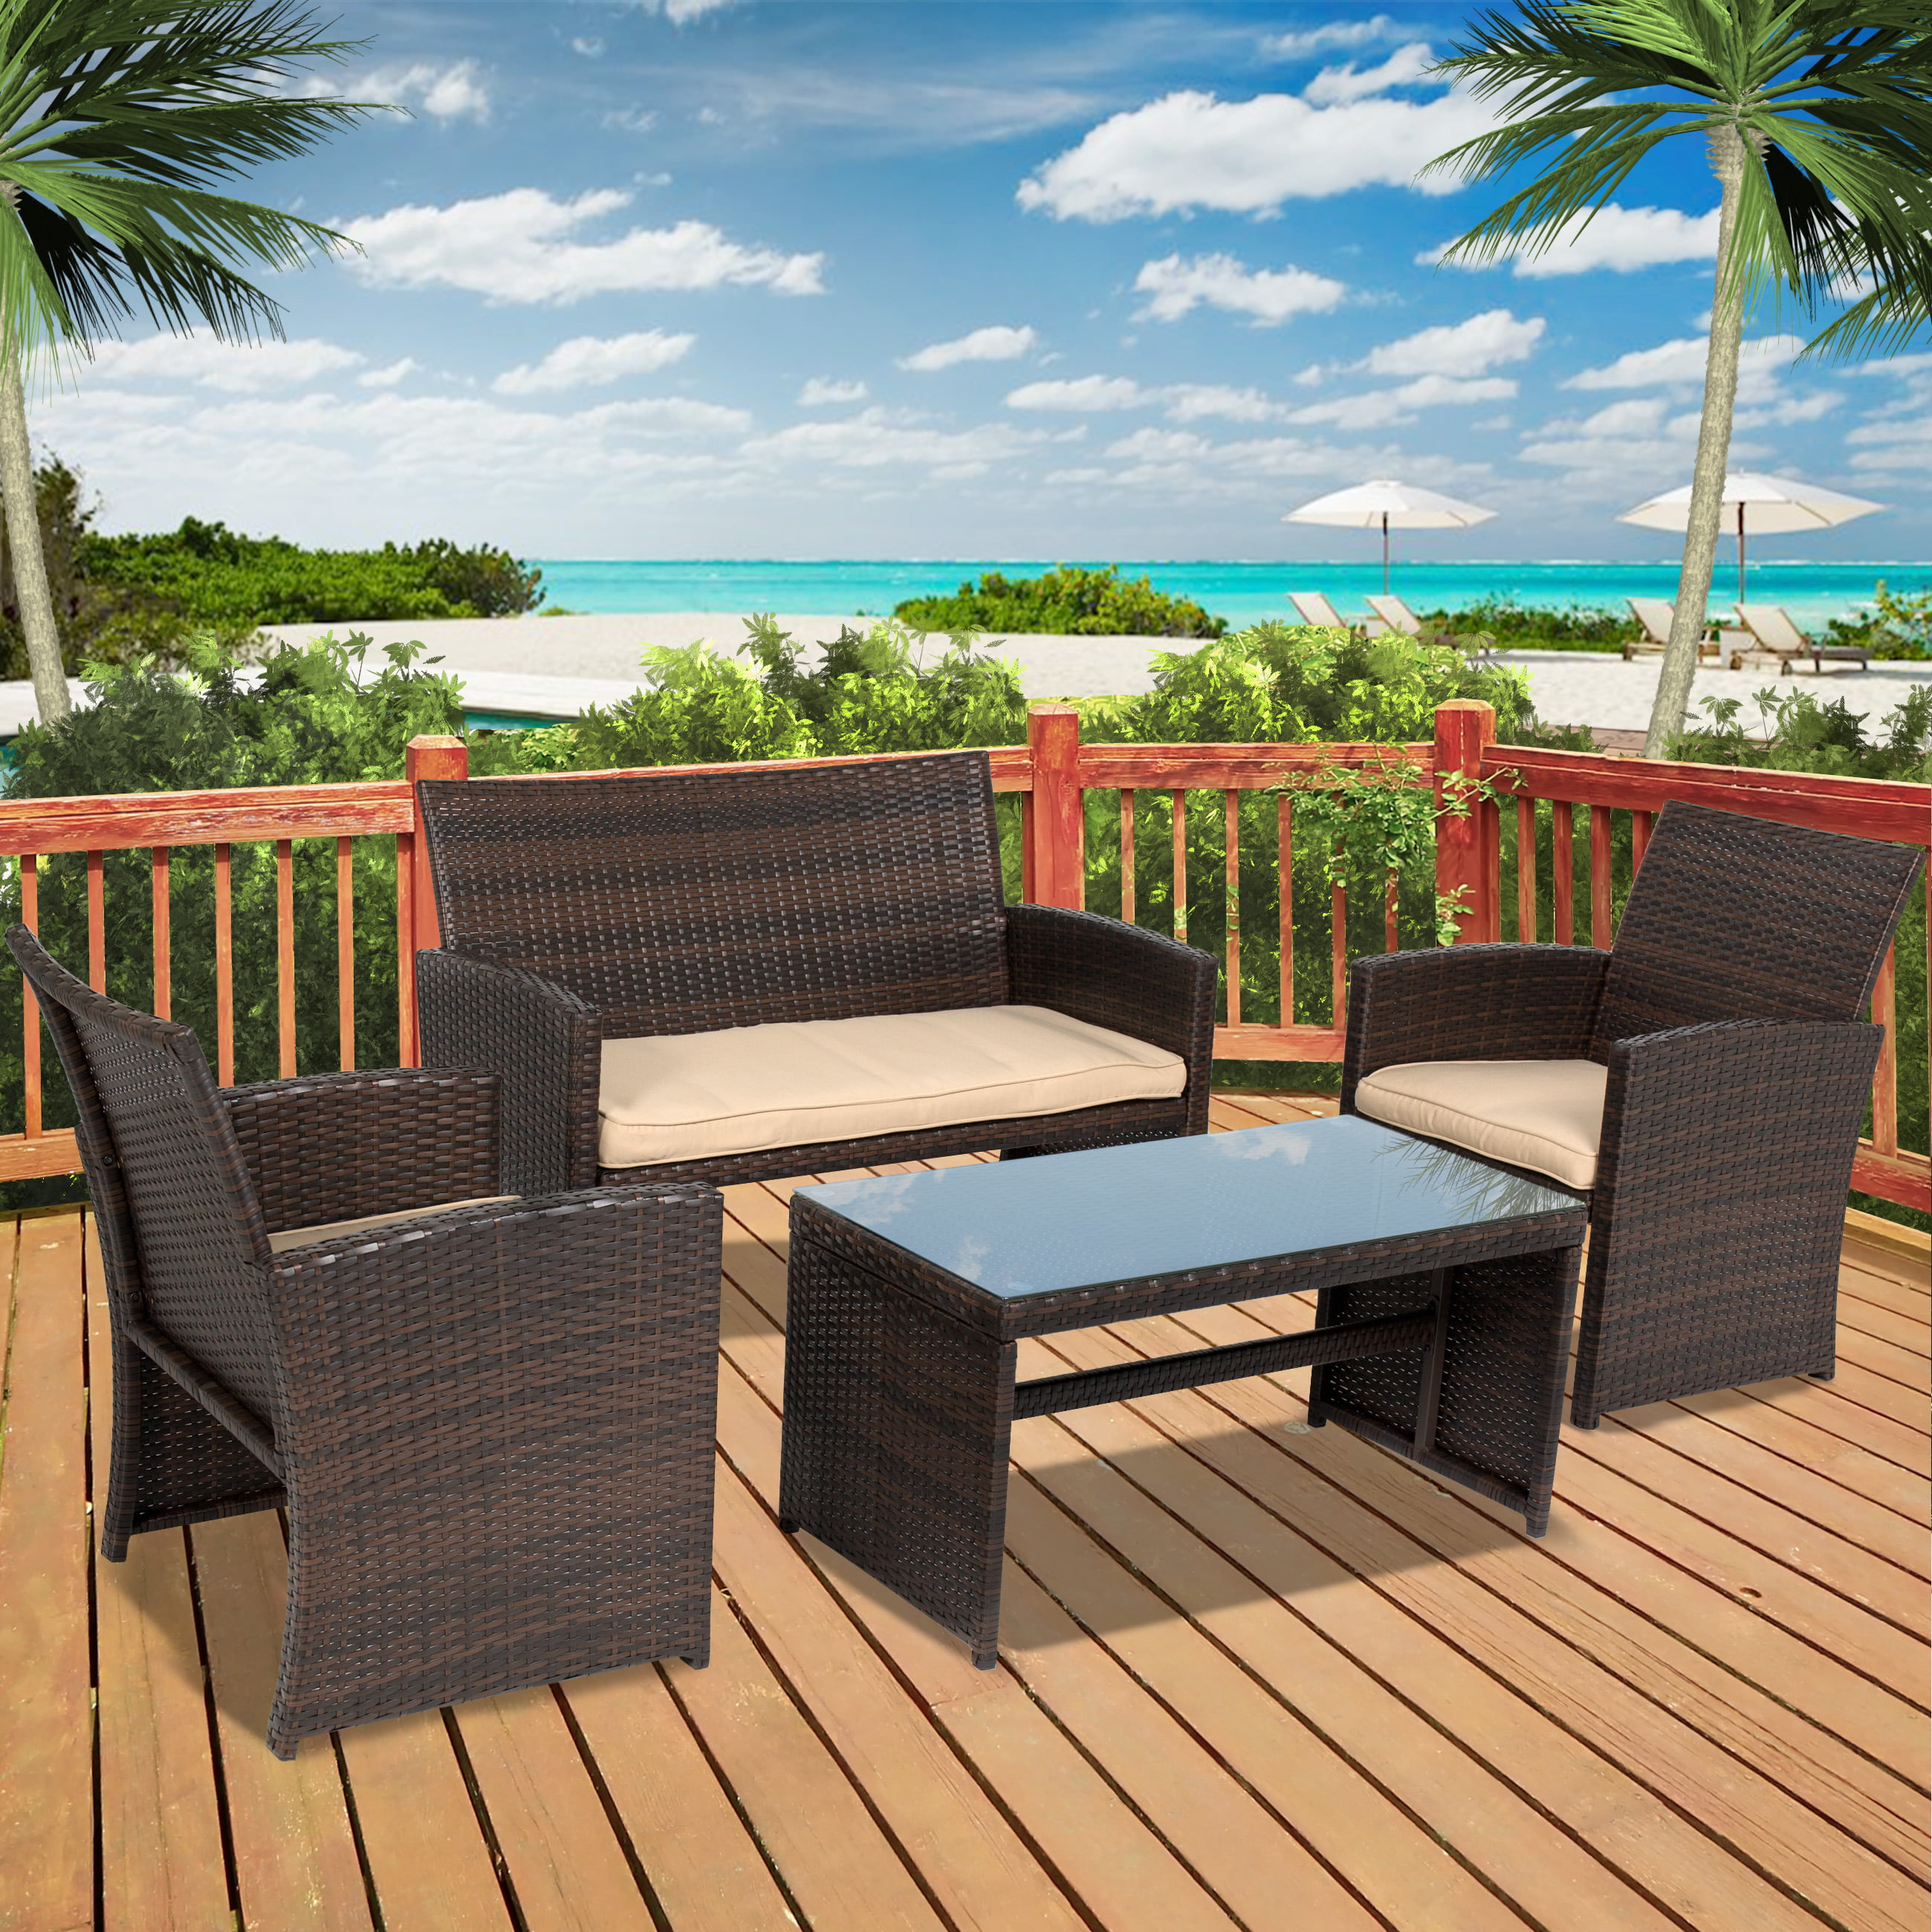 Best Choice Products 4pc Wicker Outdoor Patio Furniture Set Cushioned Seats by Patio Sets